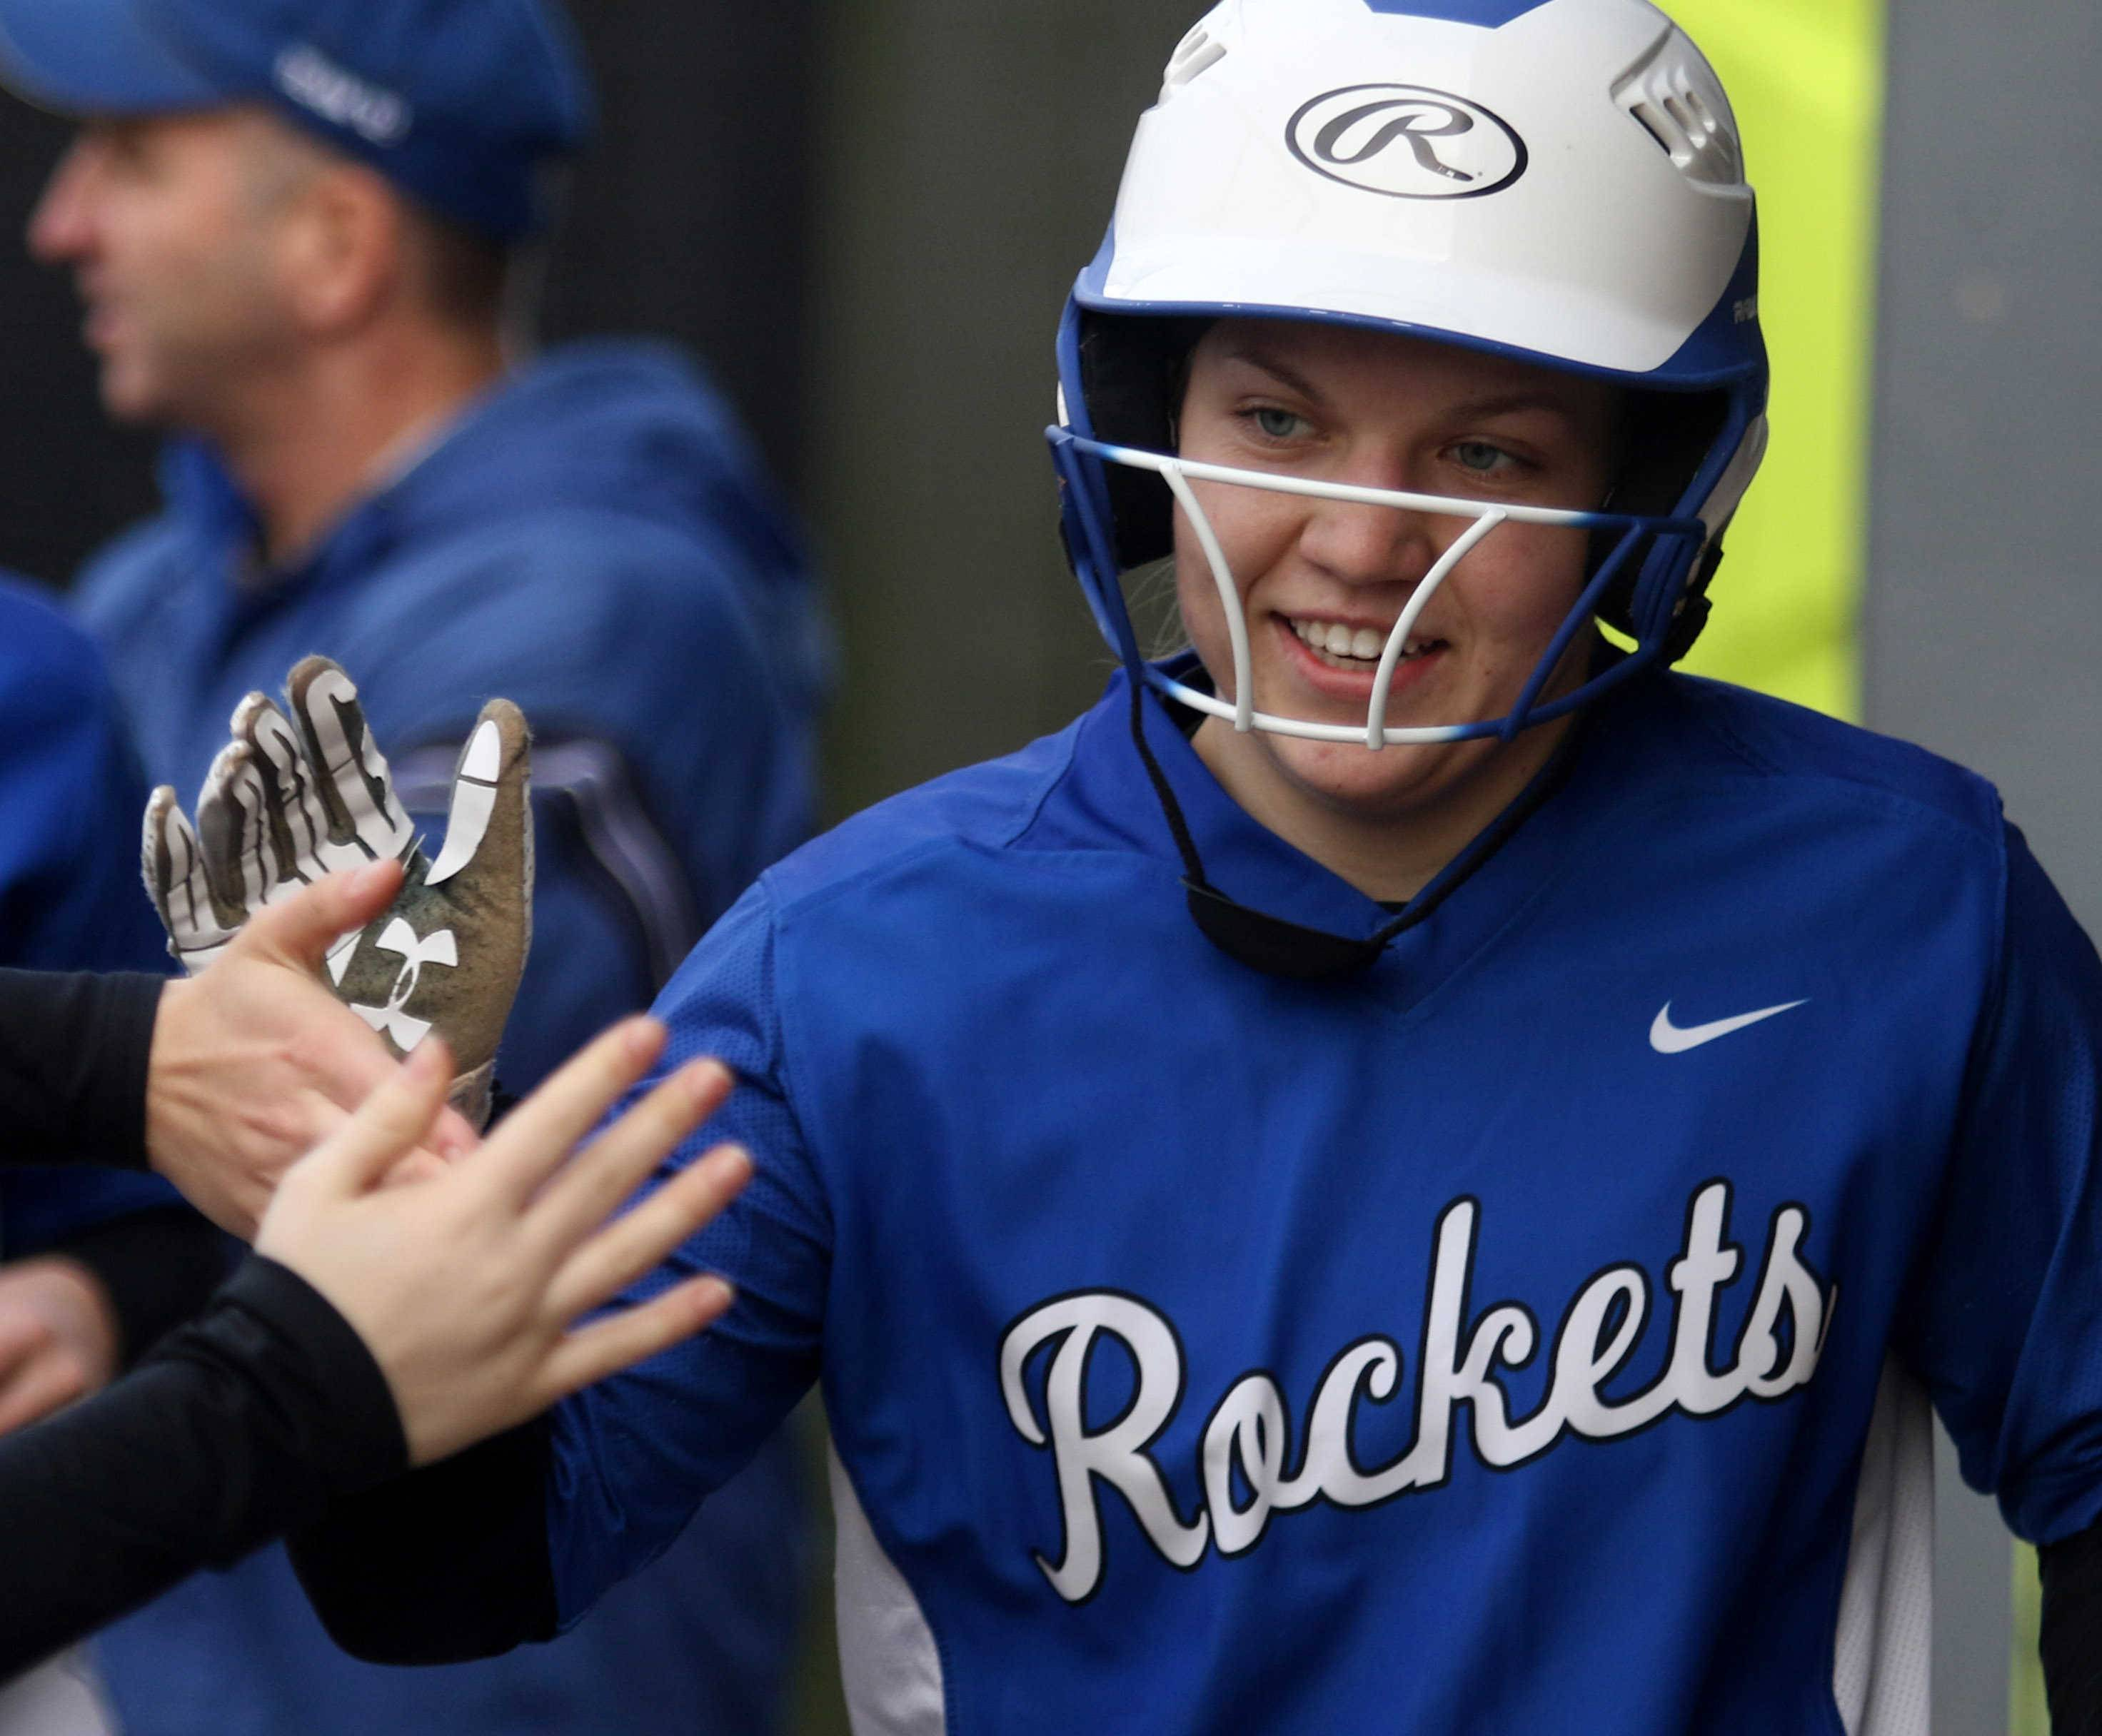 Burlington Central's Danielle Yurgil is all smiles as she receives high fives after scoring during varsity softball action at Kaneland Monday night.